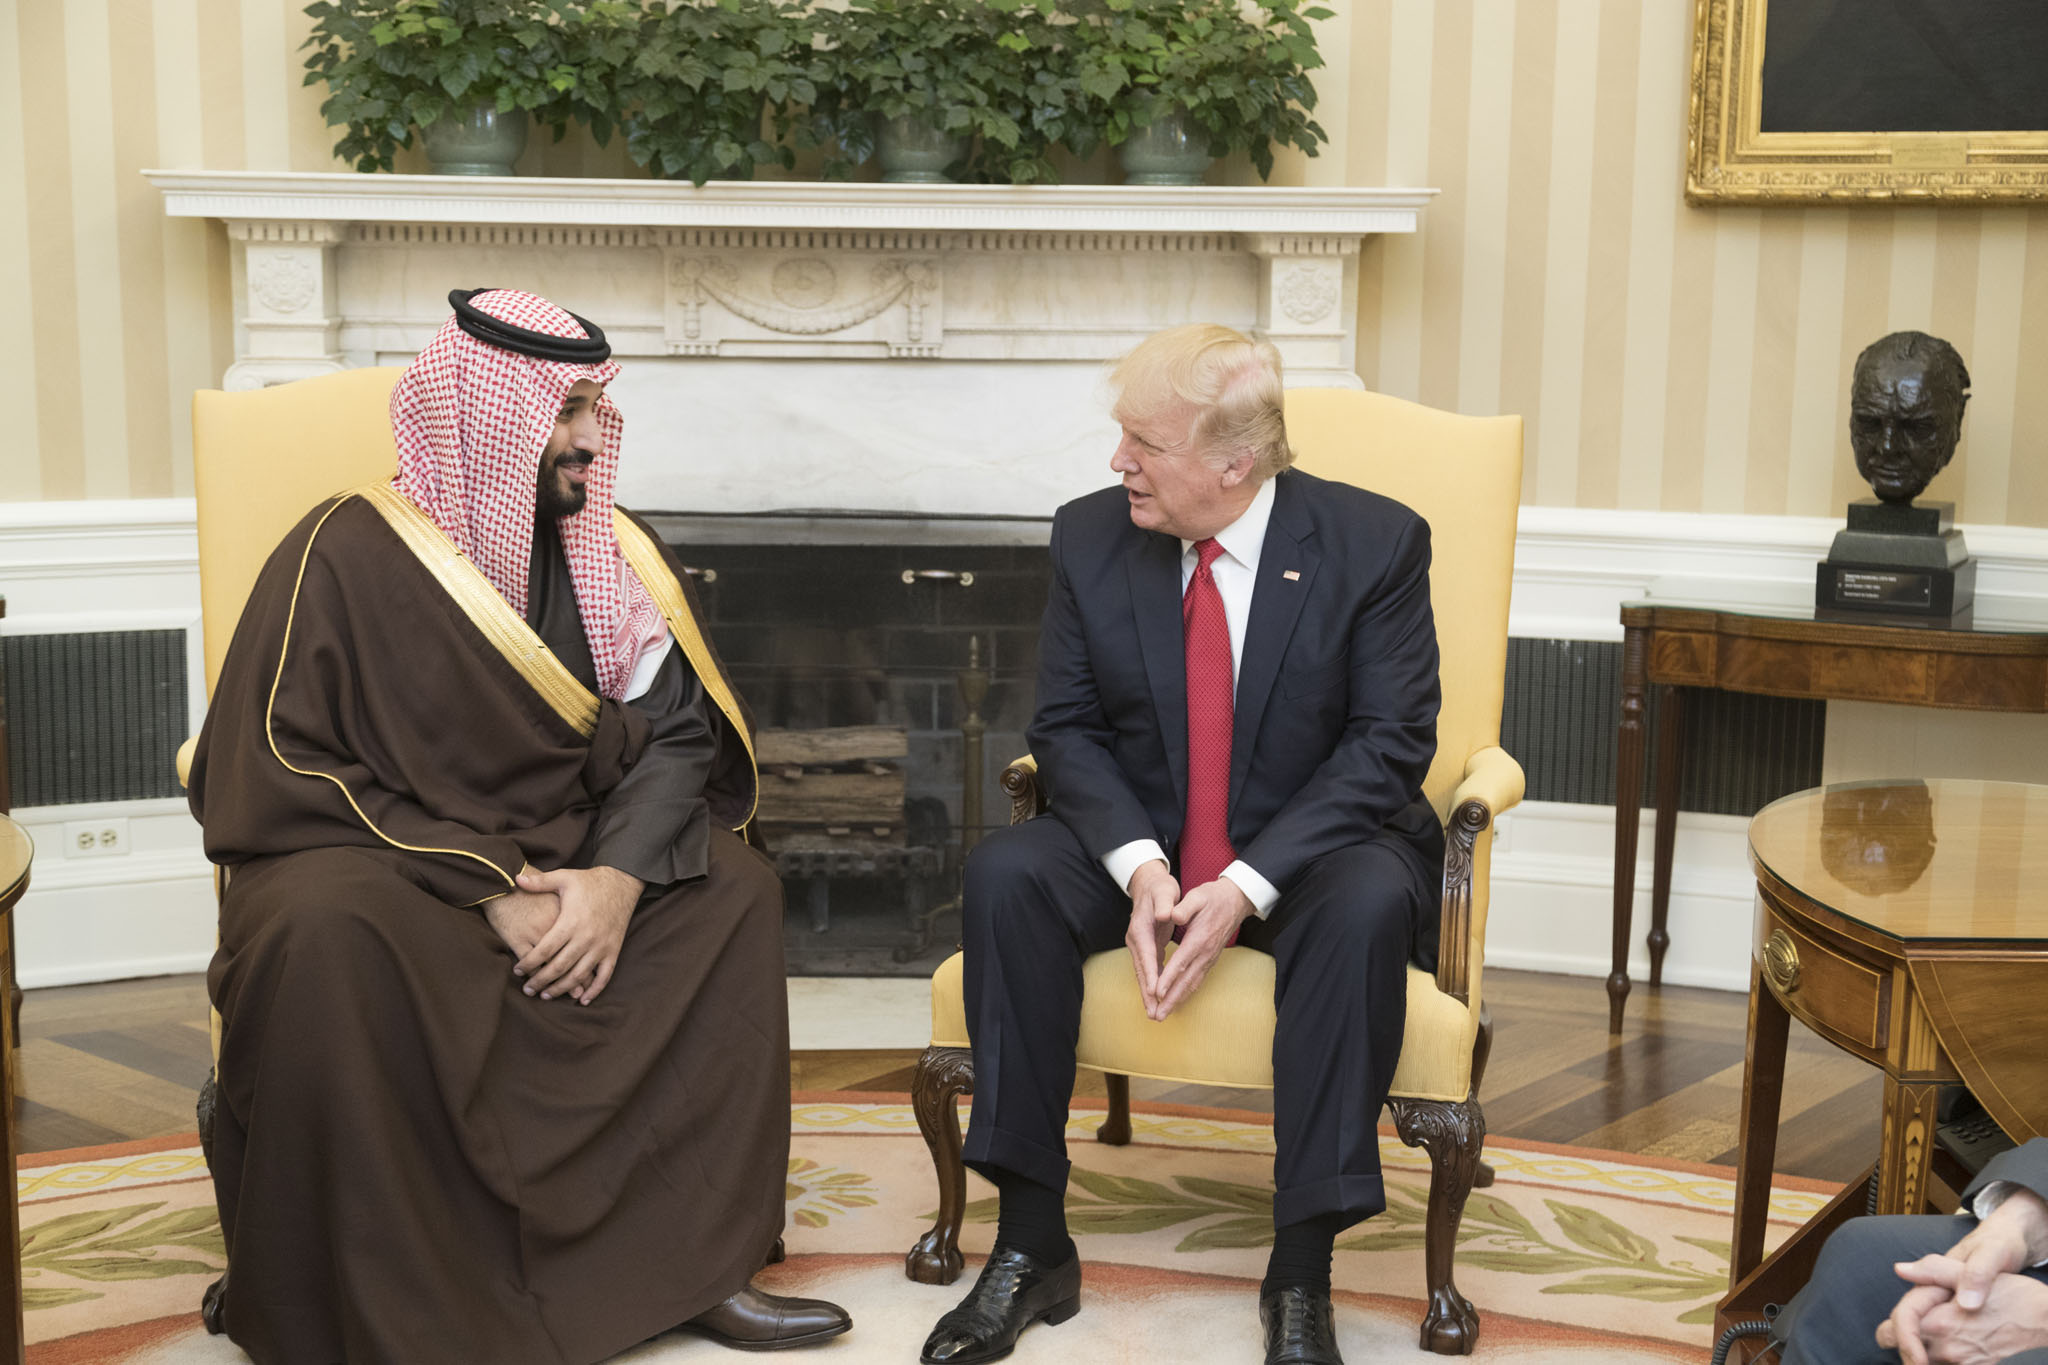 Donald Trump and Mohammad bin Salman Al Saud in the Oval Office, March 14 2017